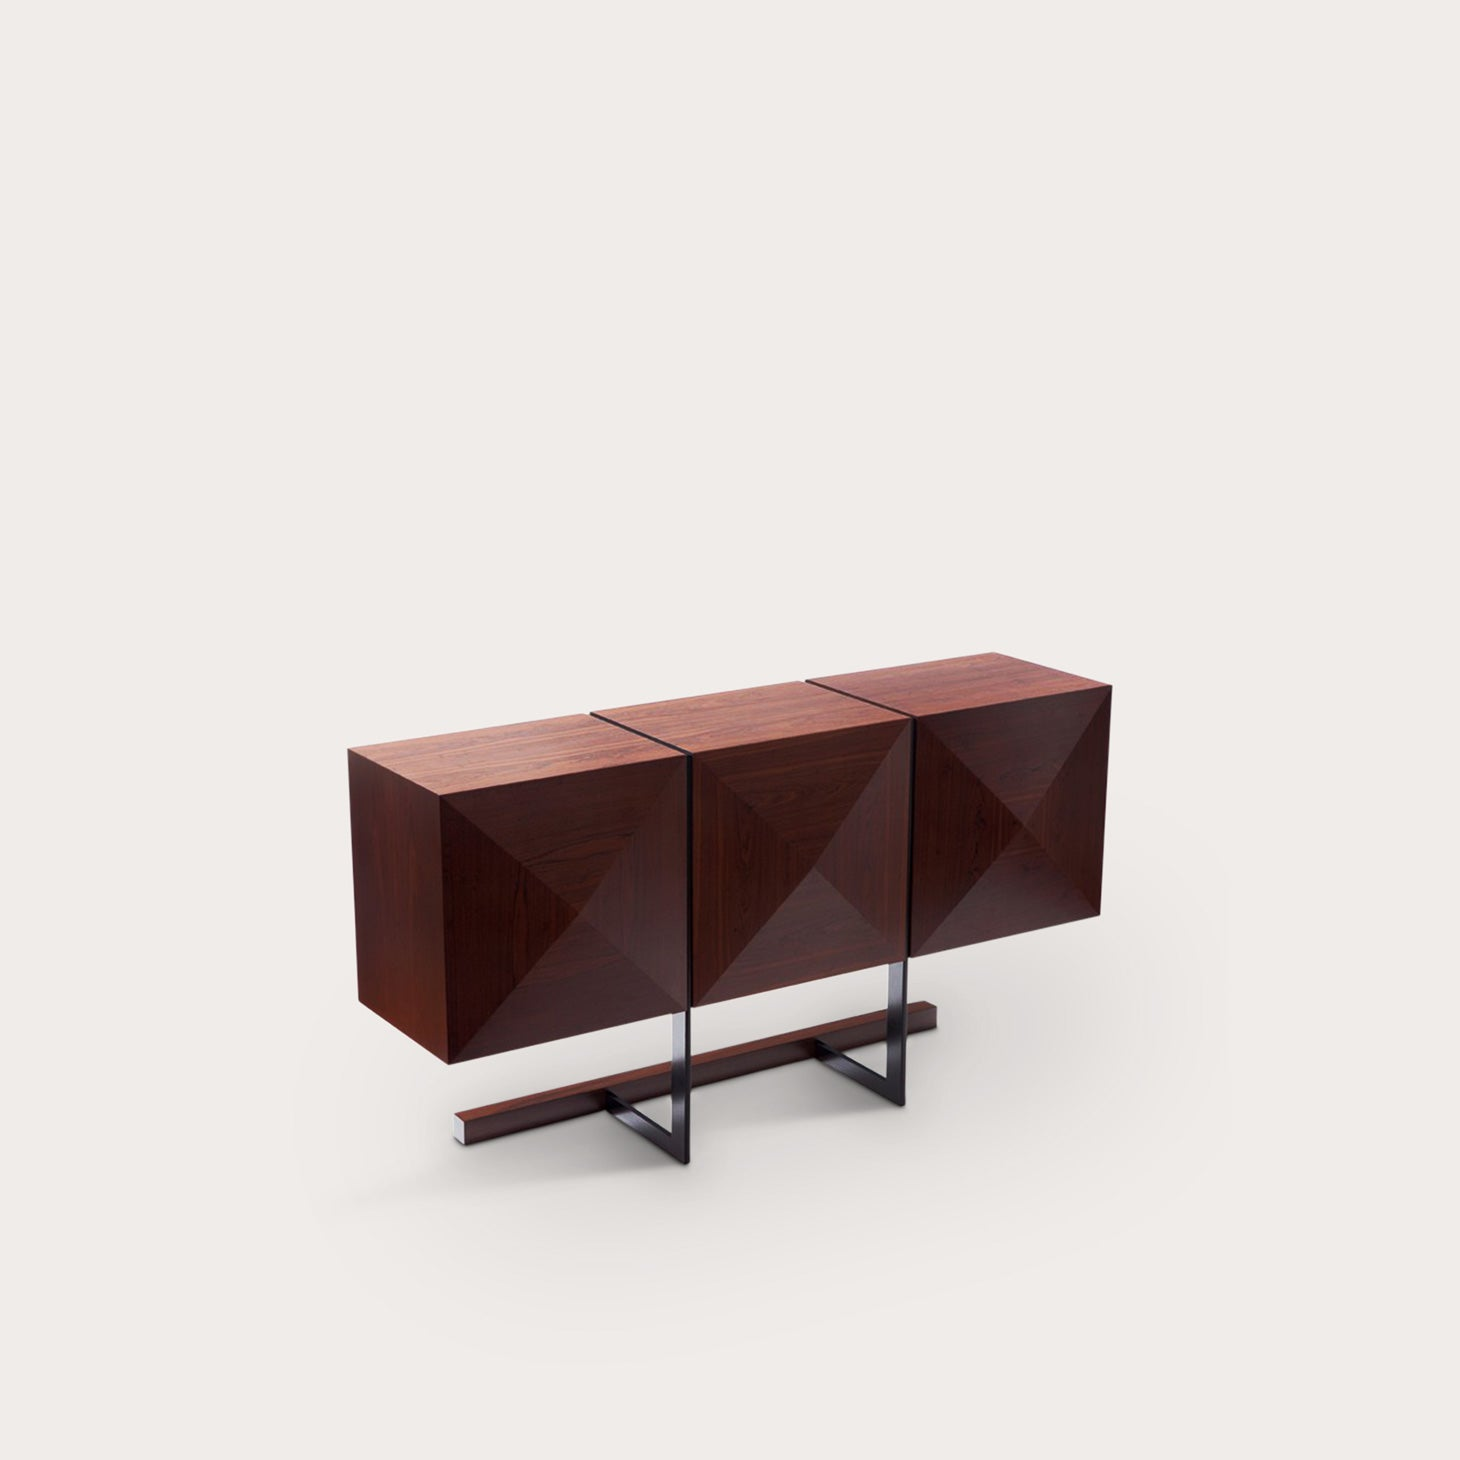 Bar Gavea Storage Jorge Zalszupin Designer Furniture Sku: 003-220-10098